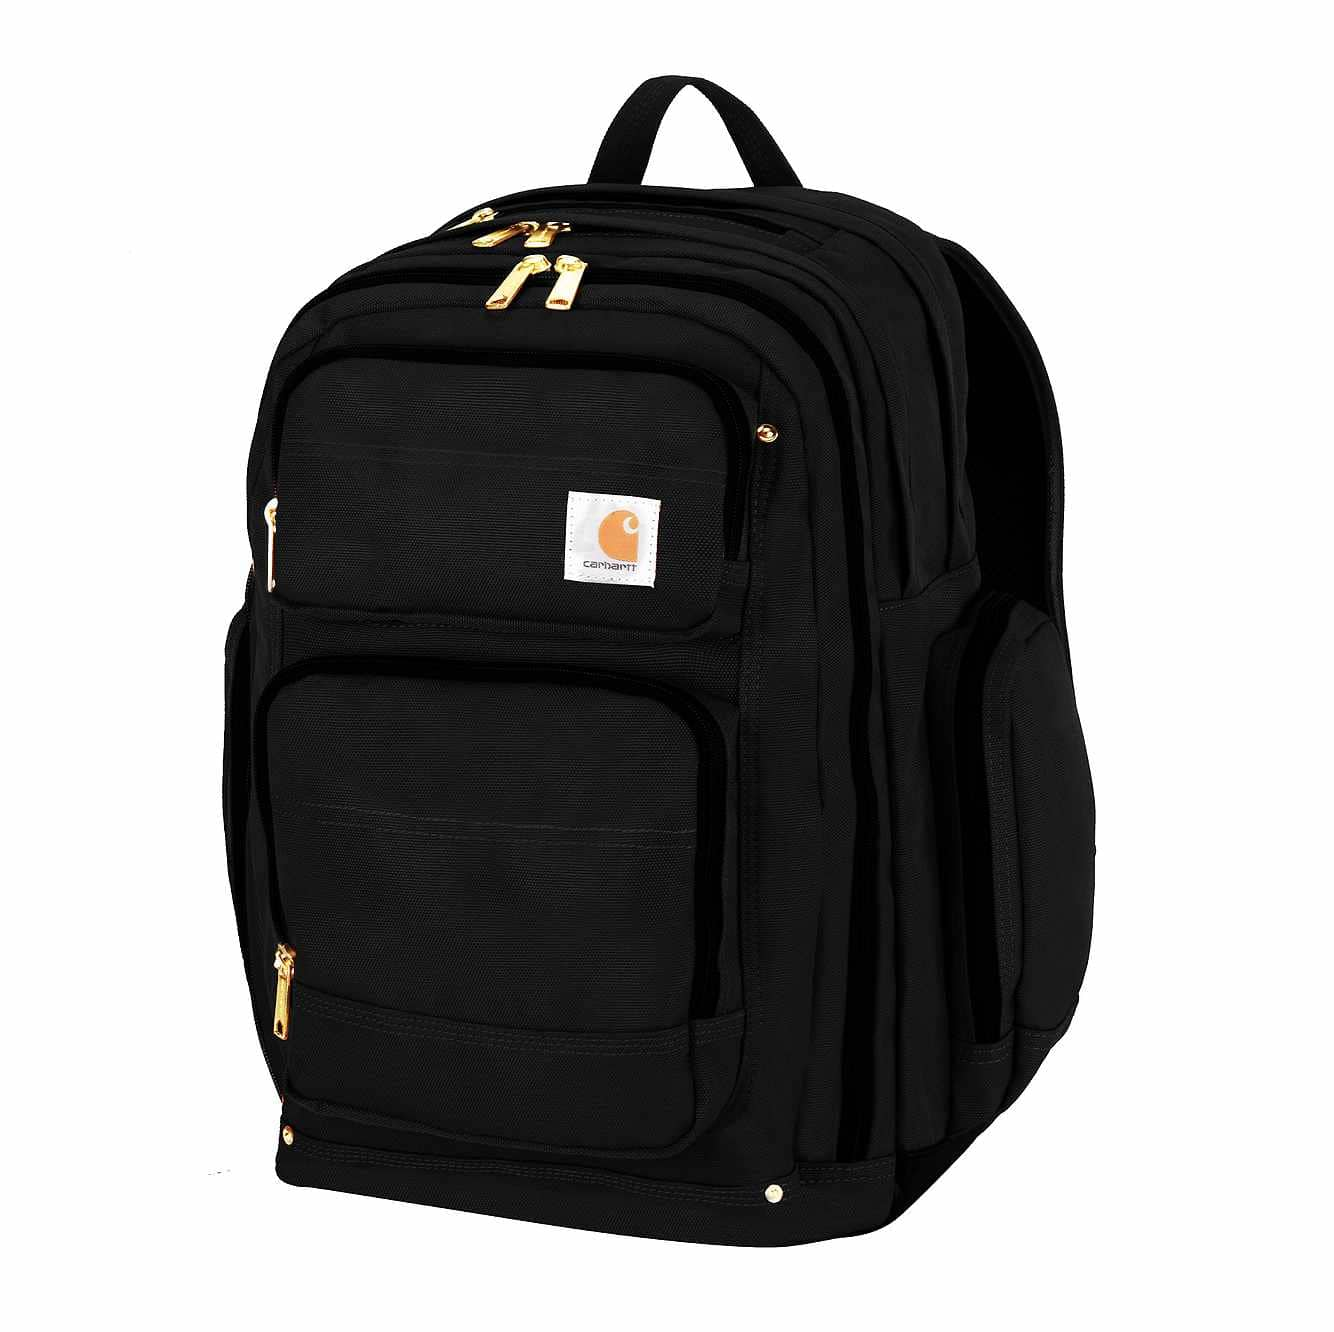 Picture of Legacy Deluxe Work Pack in Black